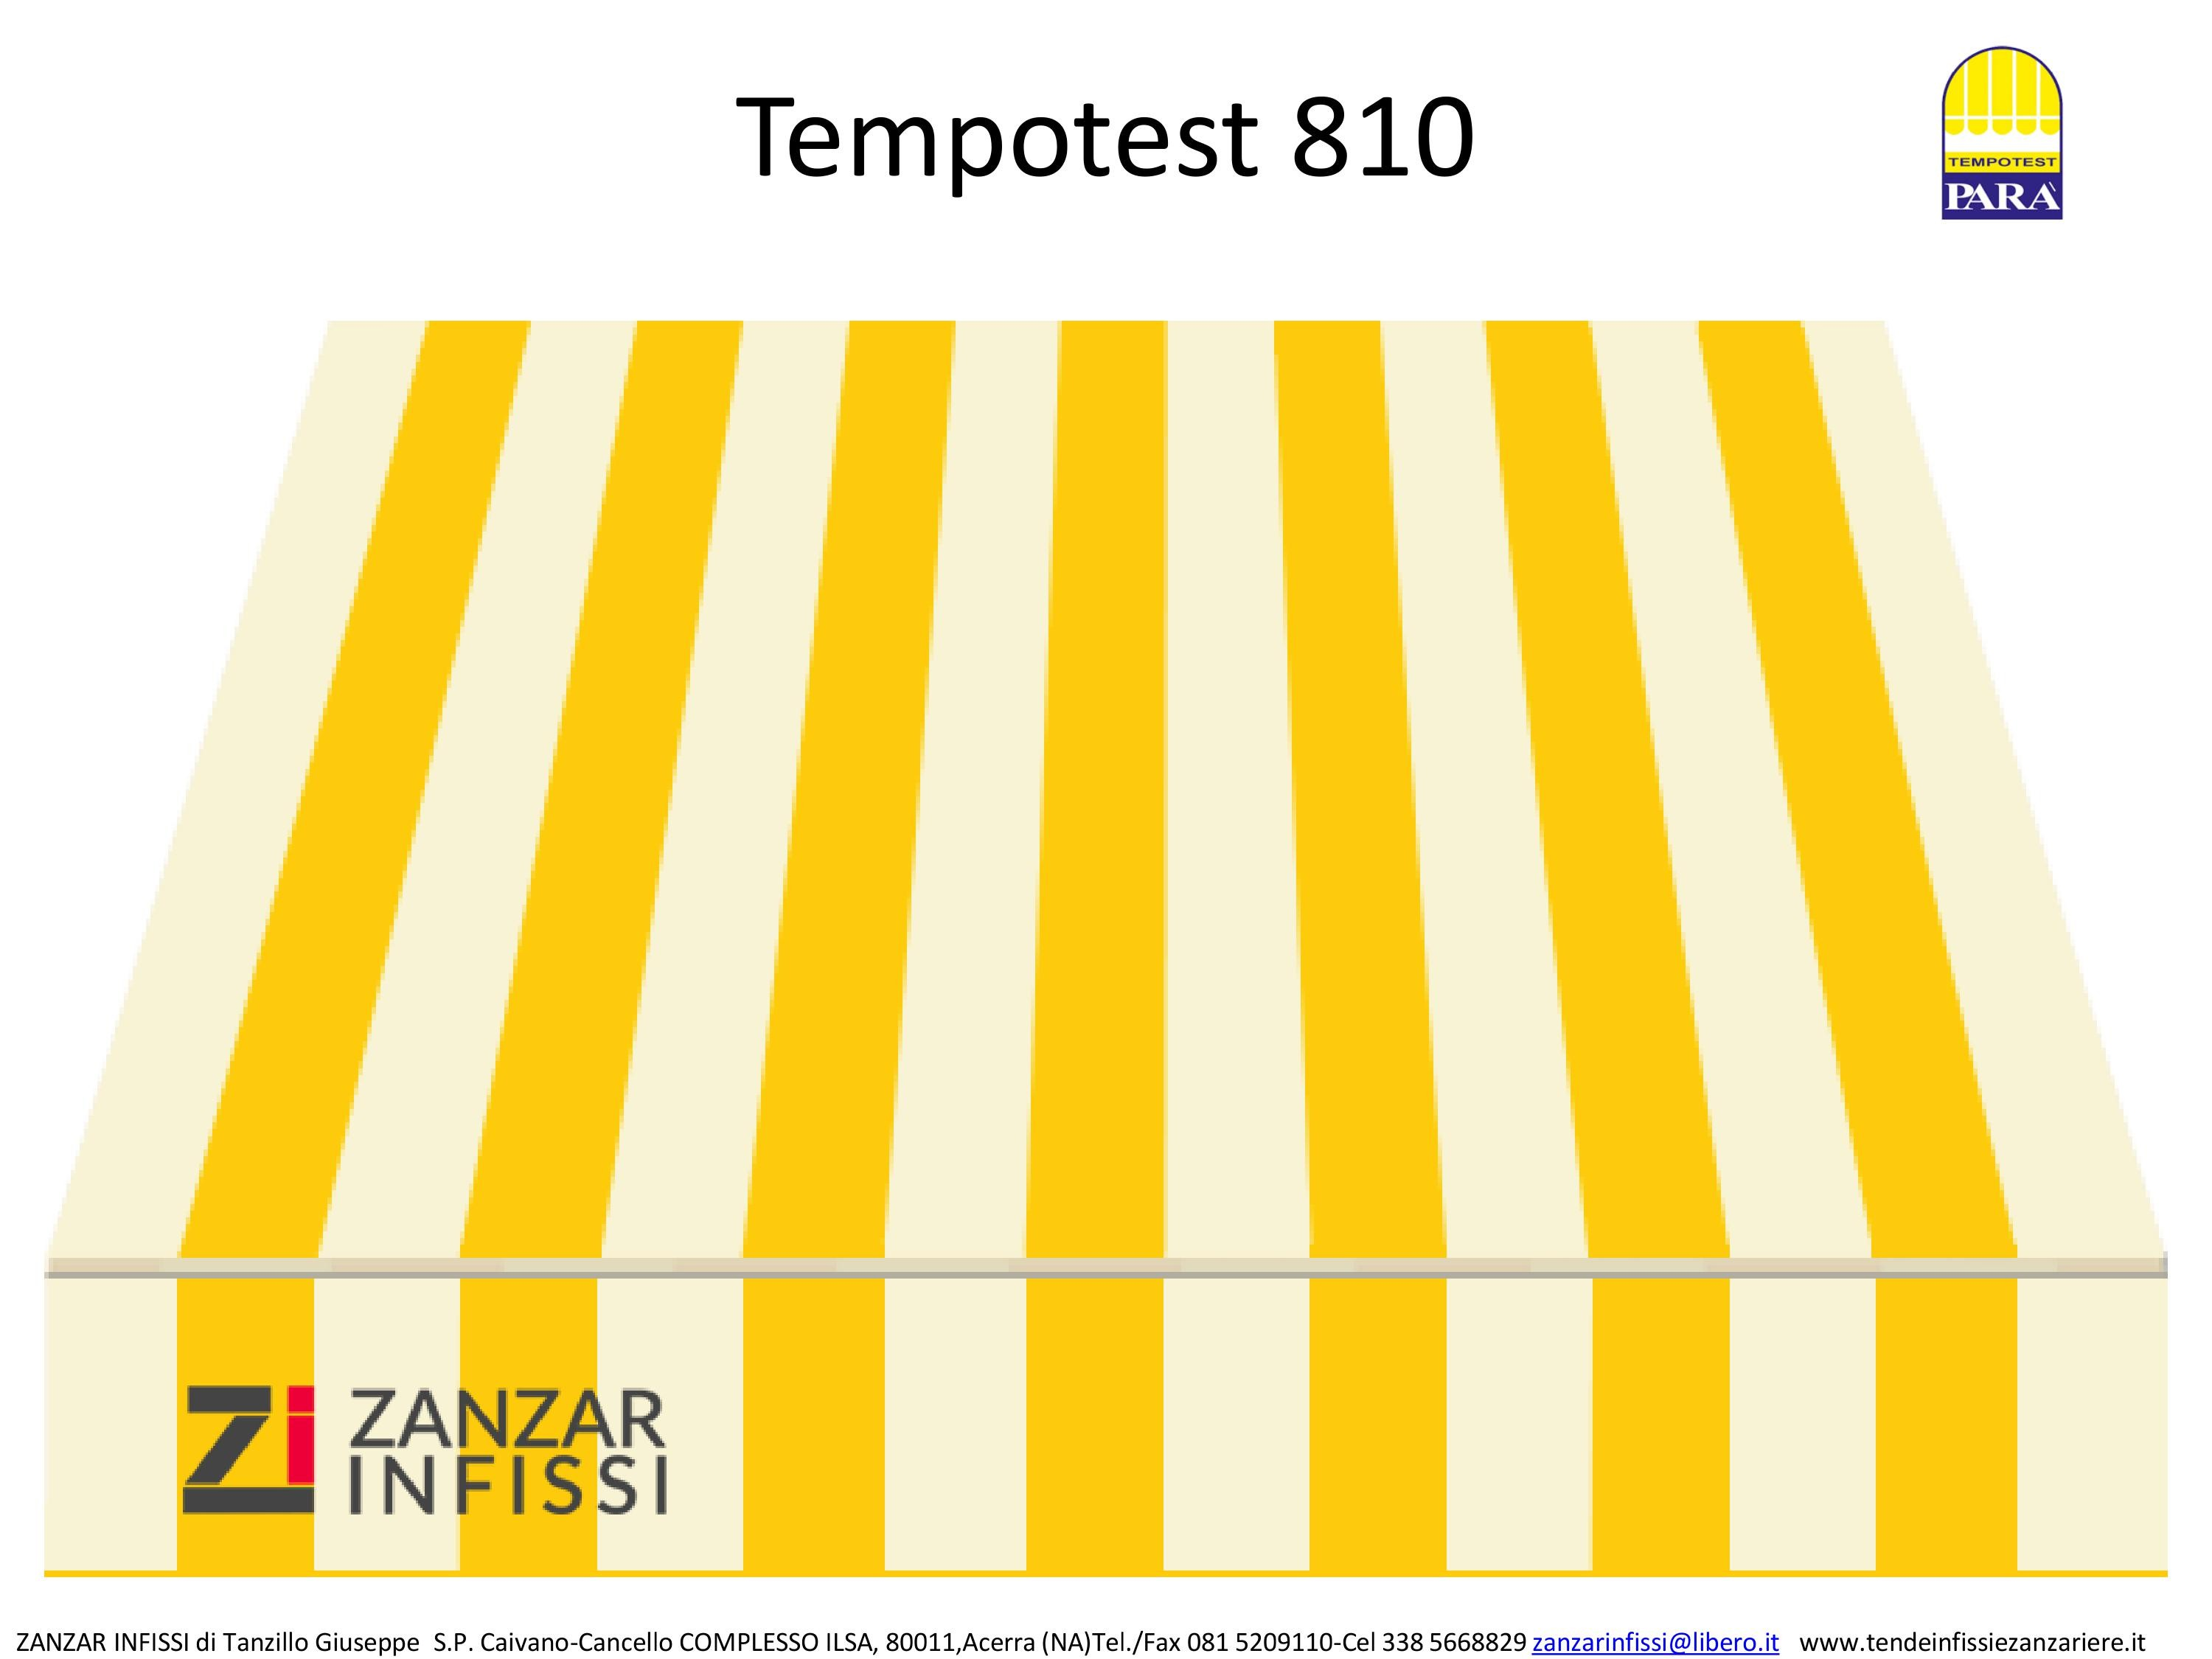 Tempotest 810